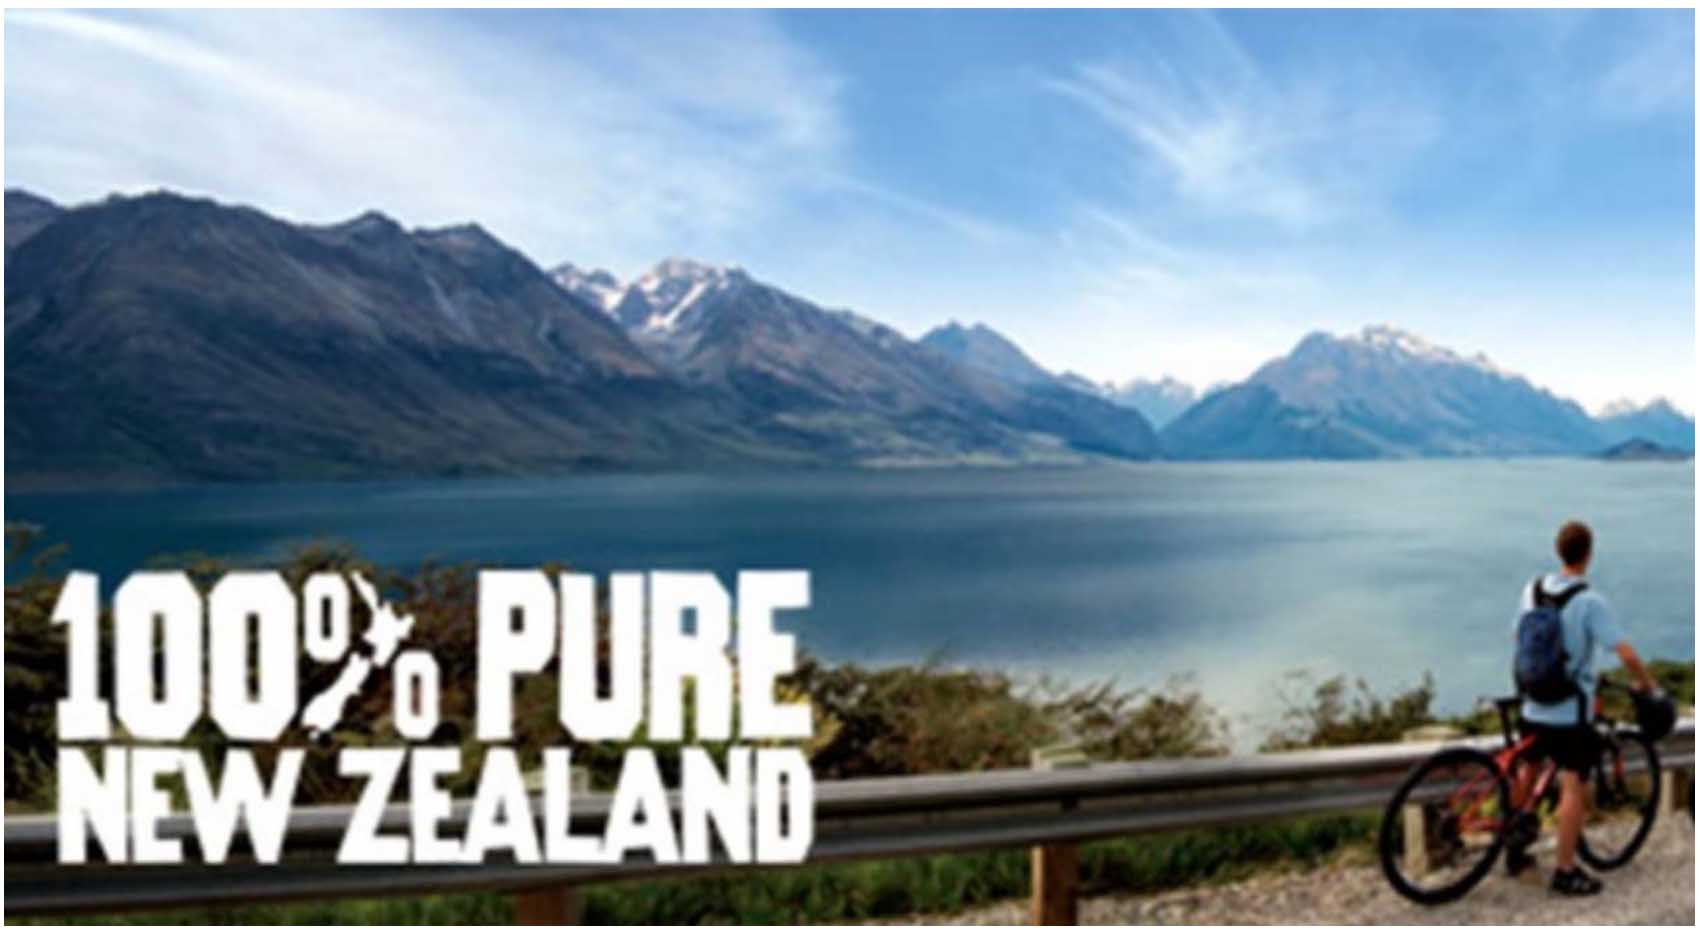 Tourism New Zealand appoints Mindshare as global media partner targeting visitor markets across the world